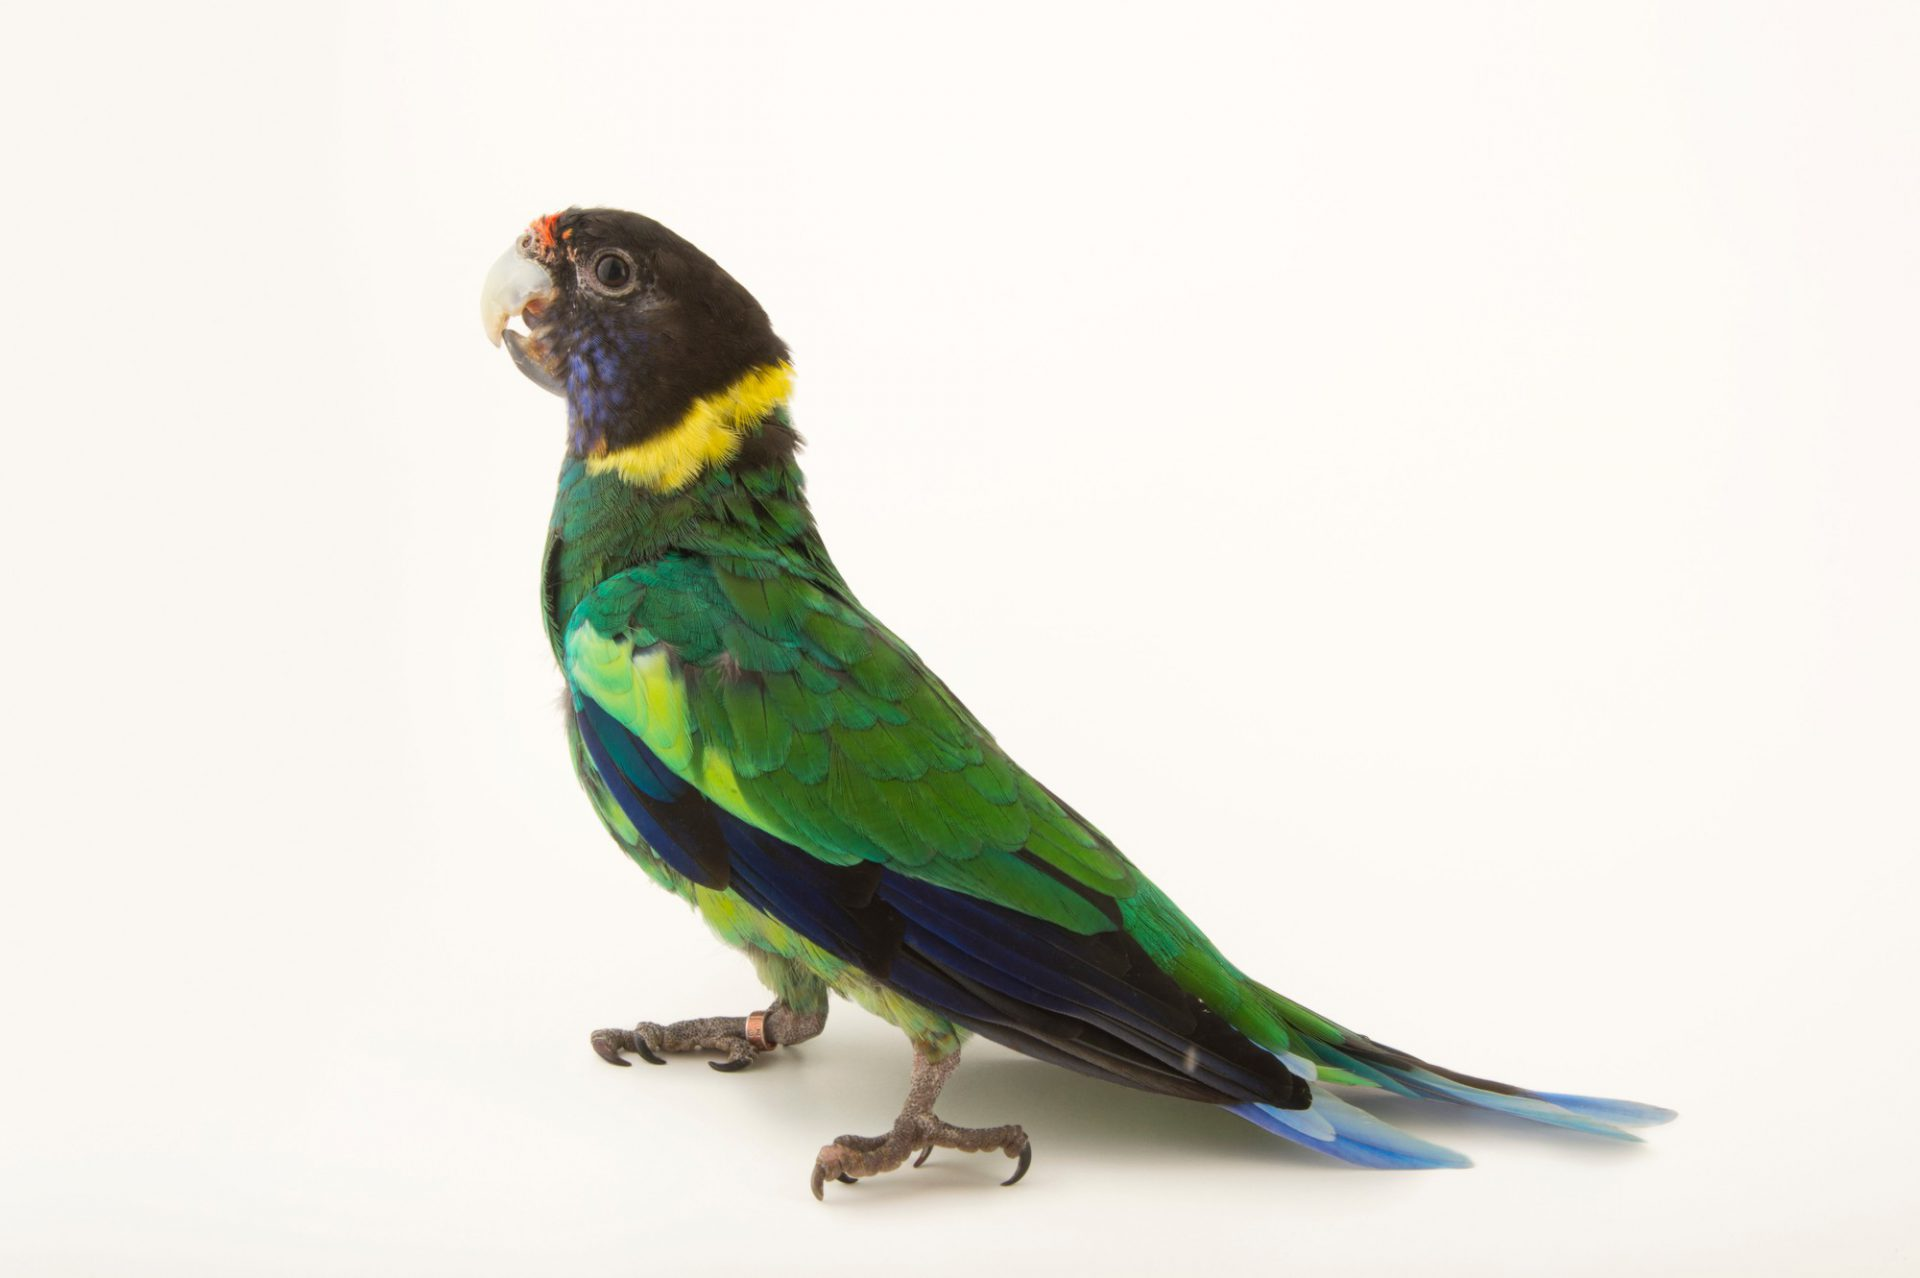 Picture of an Australian ringneck (Barnardius zonarius) at the Budapest Zoo.